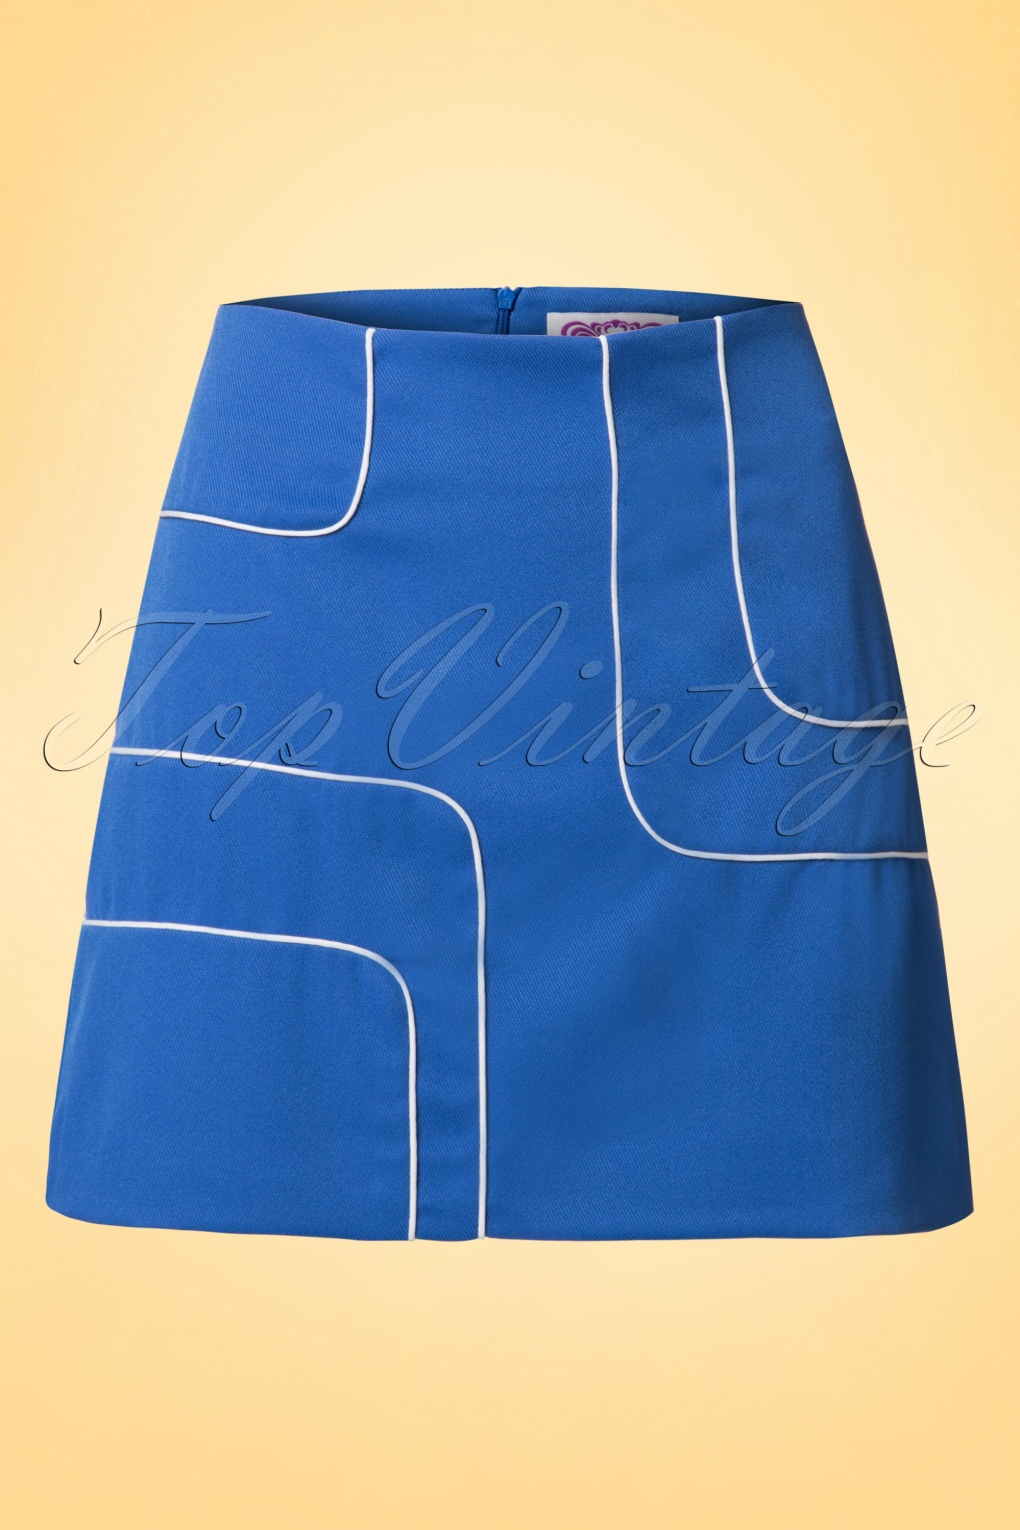 Retro Skirts: Vintage, Pencil, Circle, & Plus Sizes 60s Amy Piped Mini Skirt in Blue and White £23.87 AT vintagedancer.com